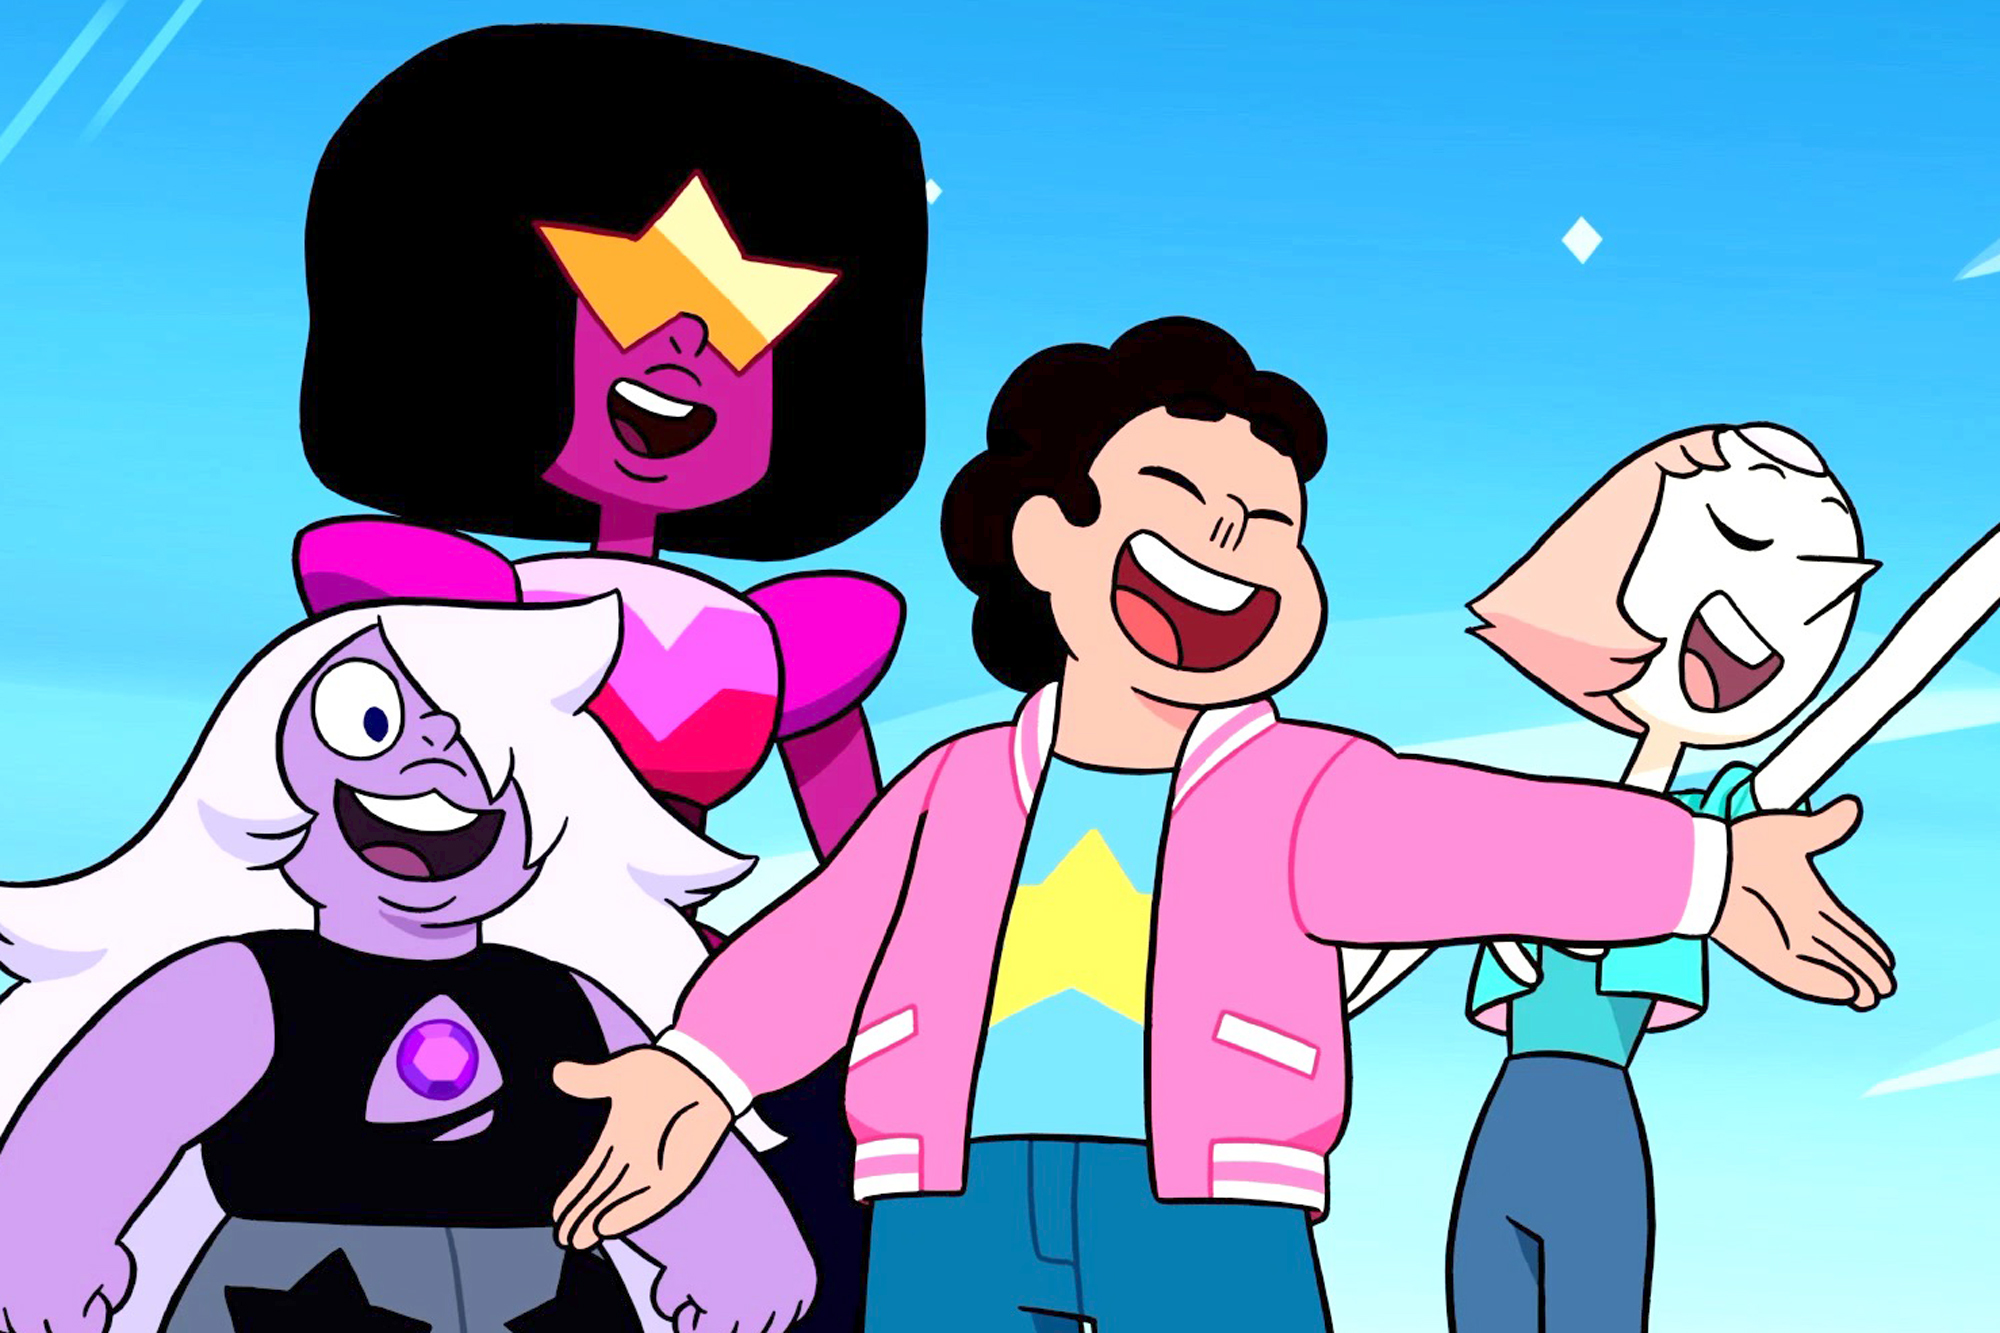 Characters from the animated show Steven Universe from left to right: Amethyst, Garnet, Steven, and Pearl.